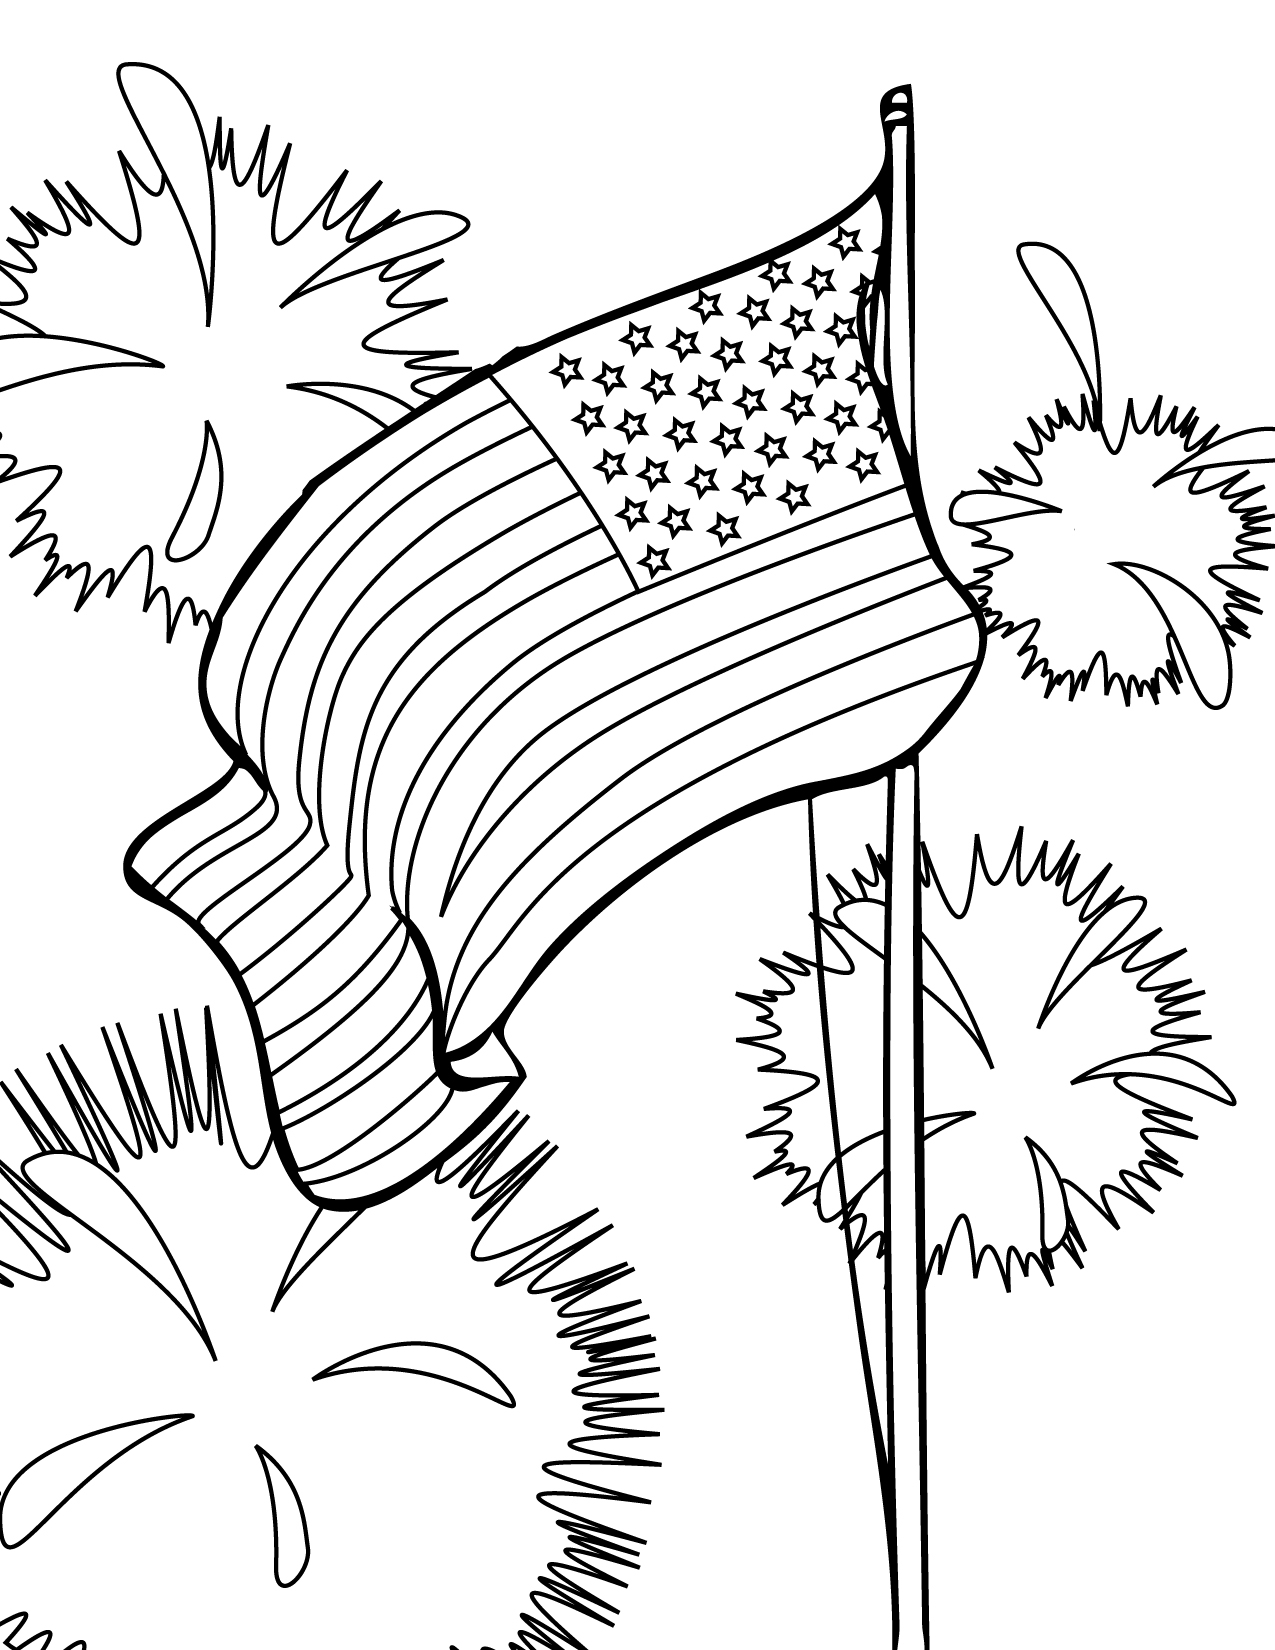 july coloring pages - 4th of july coloring pages